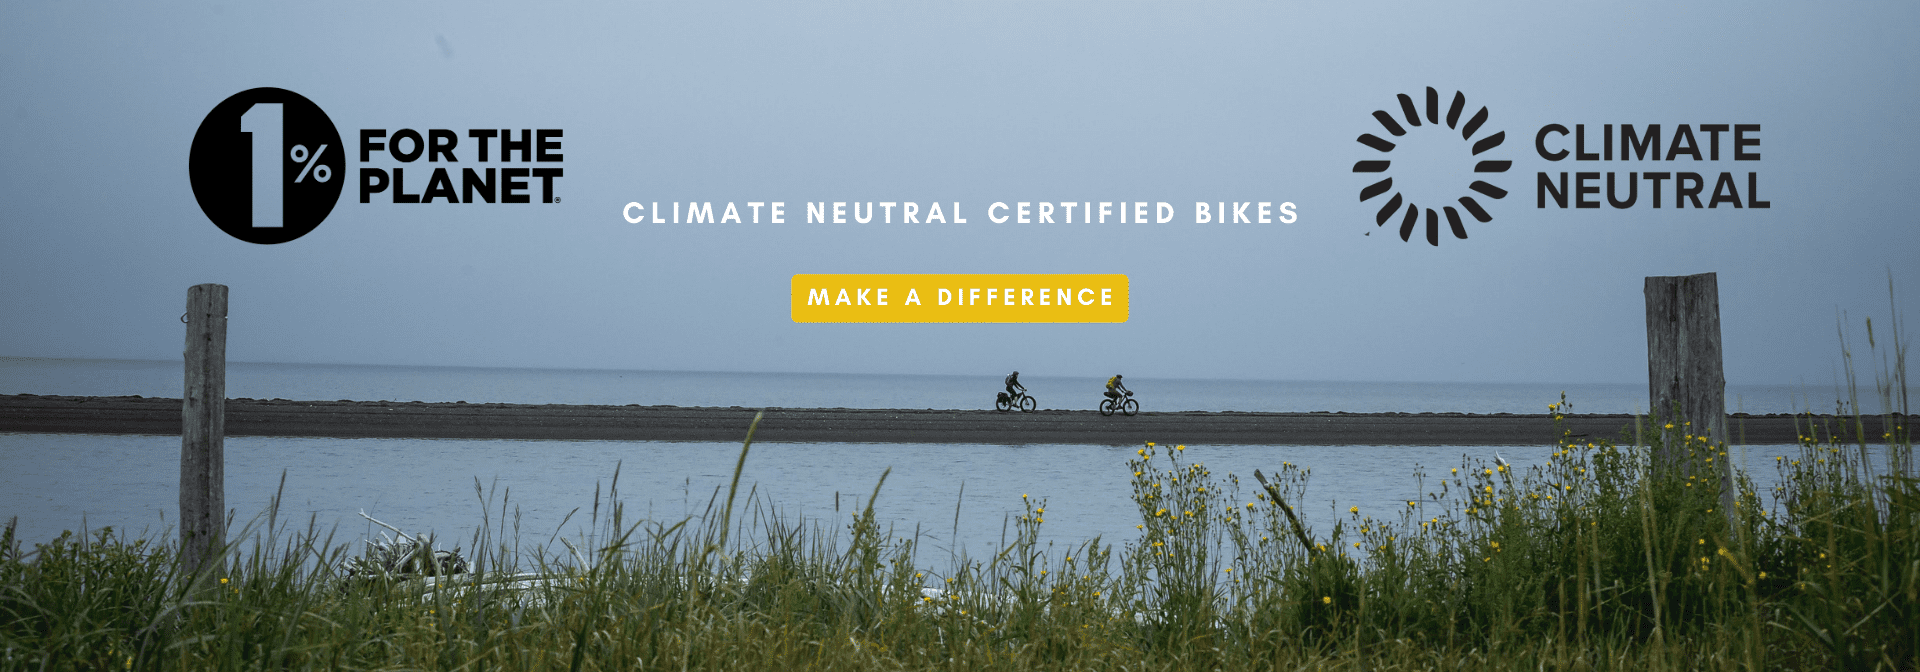 CLIMATE NEUTRAL CERTIFIED PANORAMA